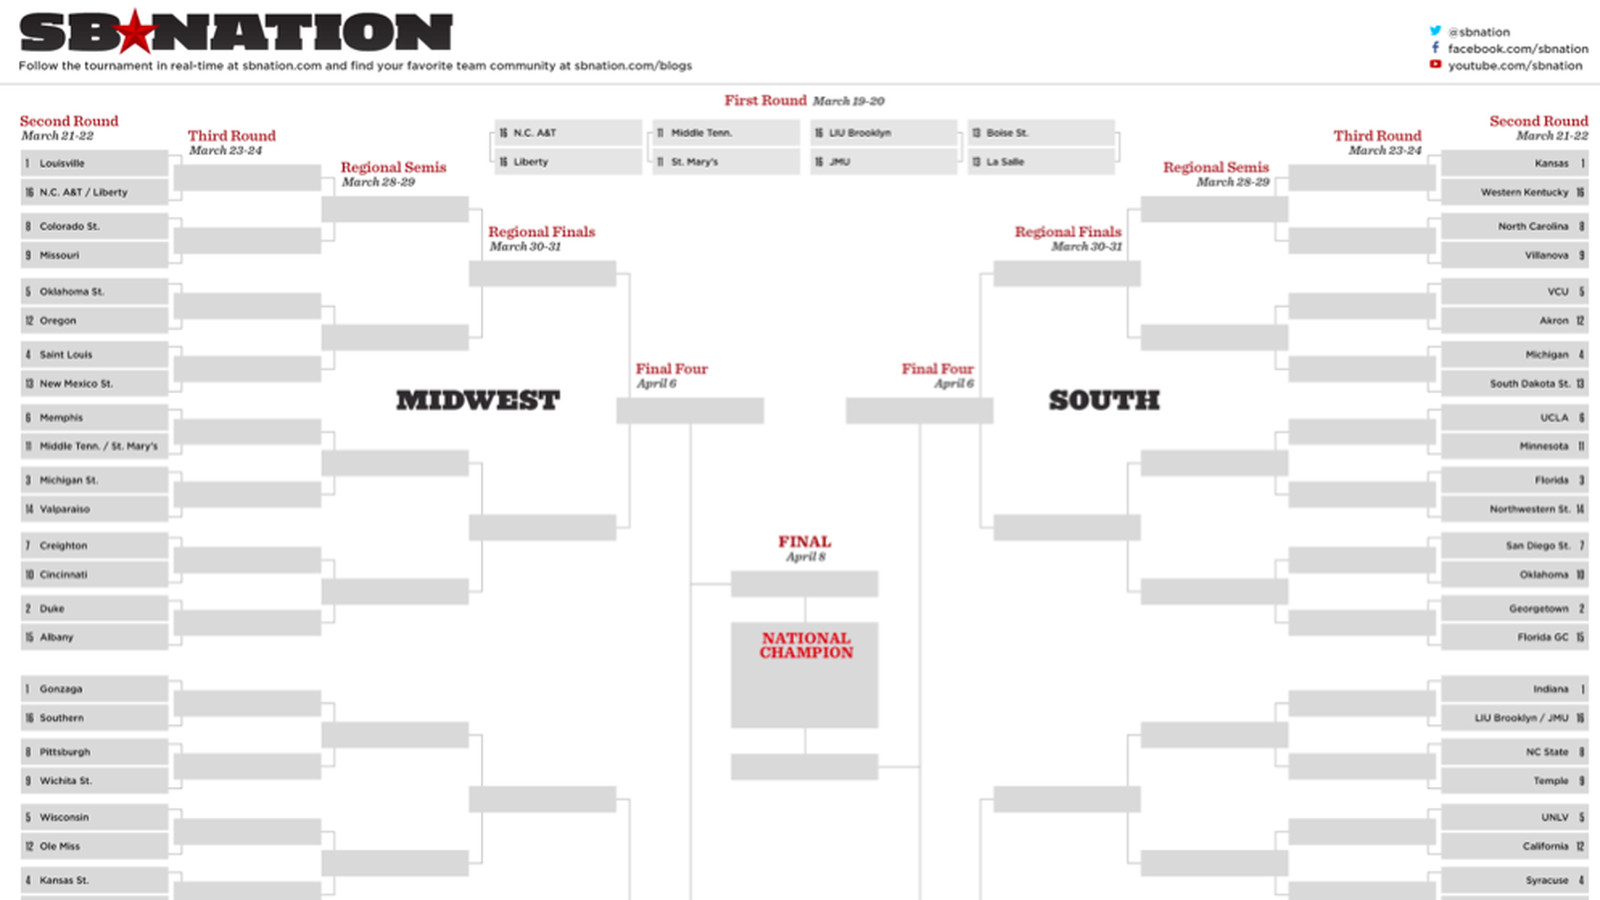 NCAA bracket 2013: Printable bracket for March Madness